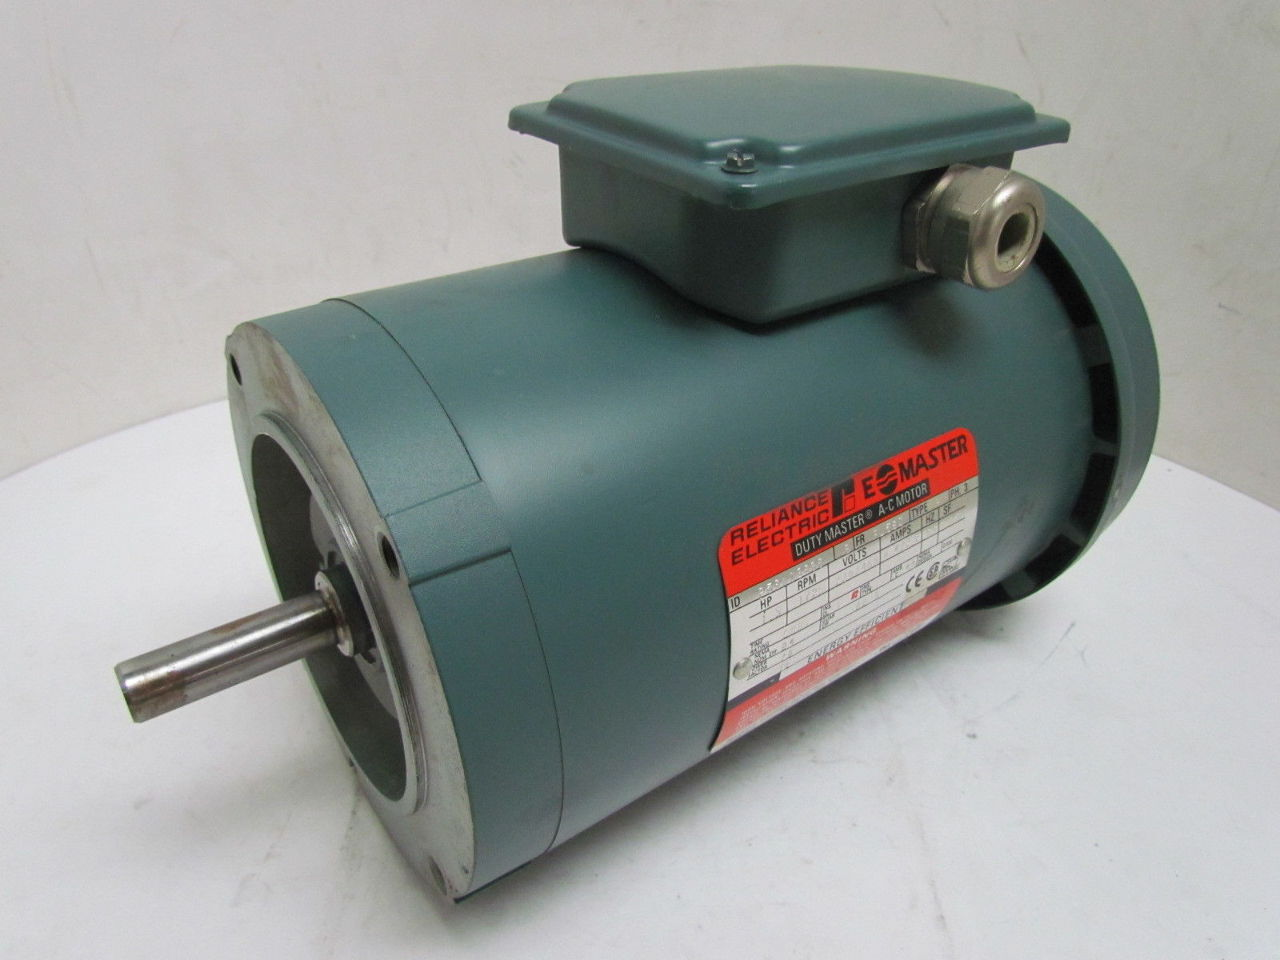 Reliance a c electric motor 1 1 2hp 1725rpm 230 460v 3ph for Reliance dc motor frame size chart